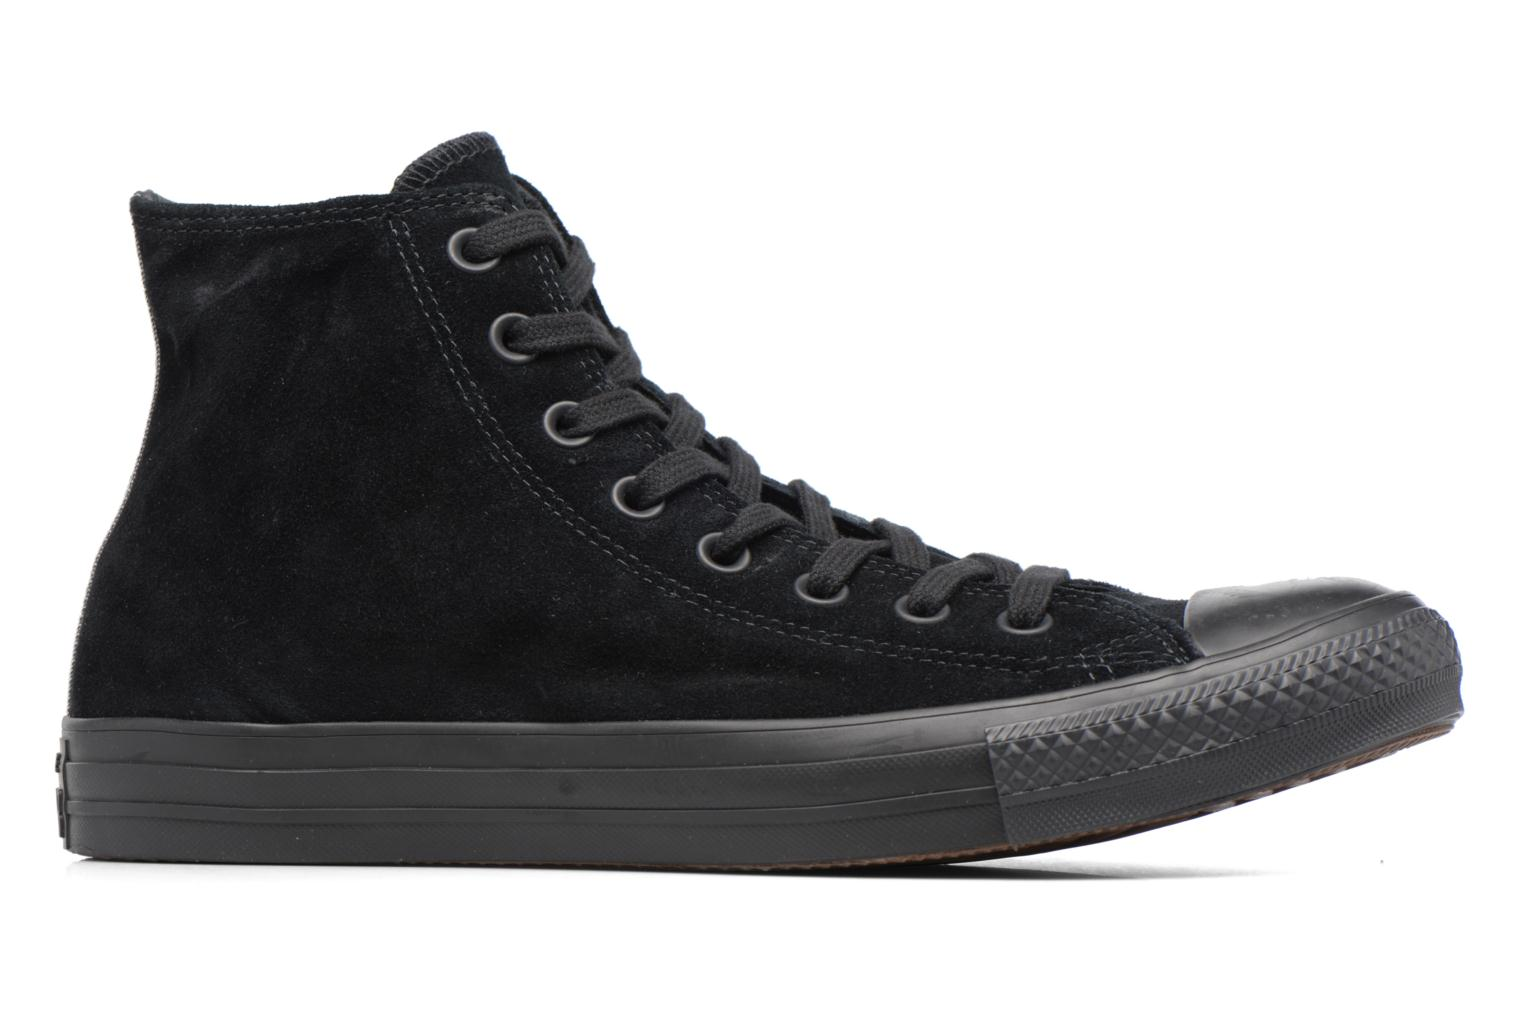 Chuck Taylor All Star Plush Suede Hi Black/black/black